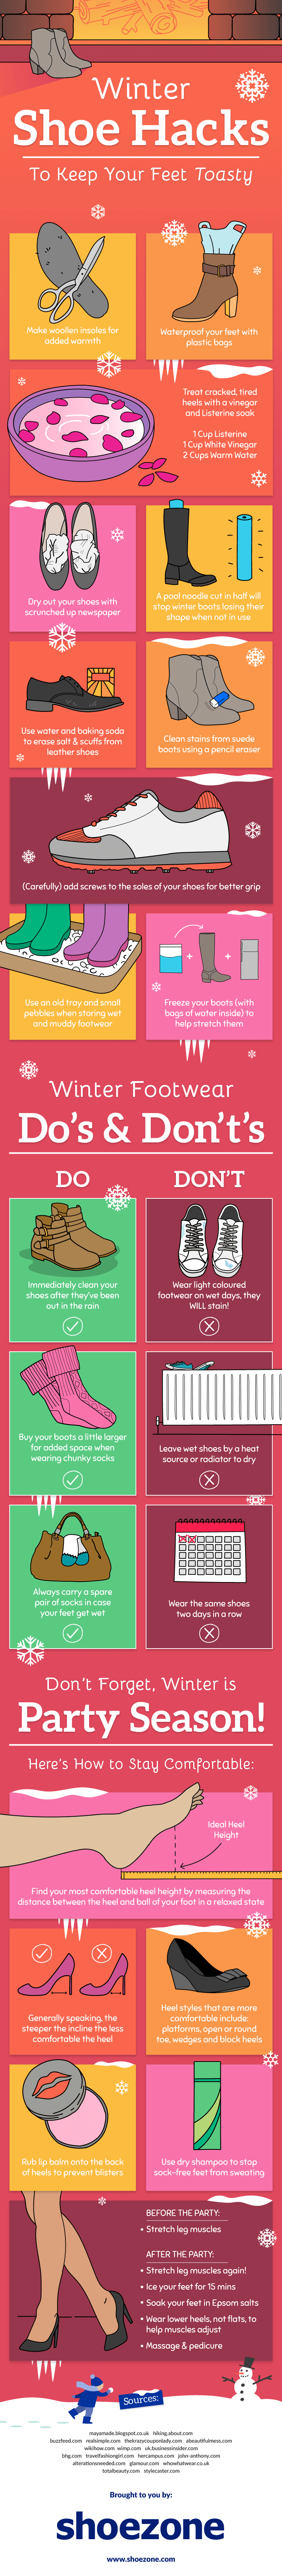 Winter Woes No More: Great Hacks to Protect Your Shoes and Feet - Infographic